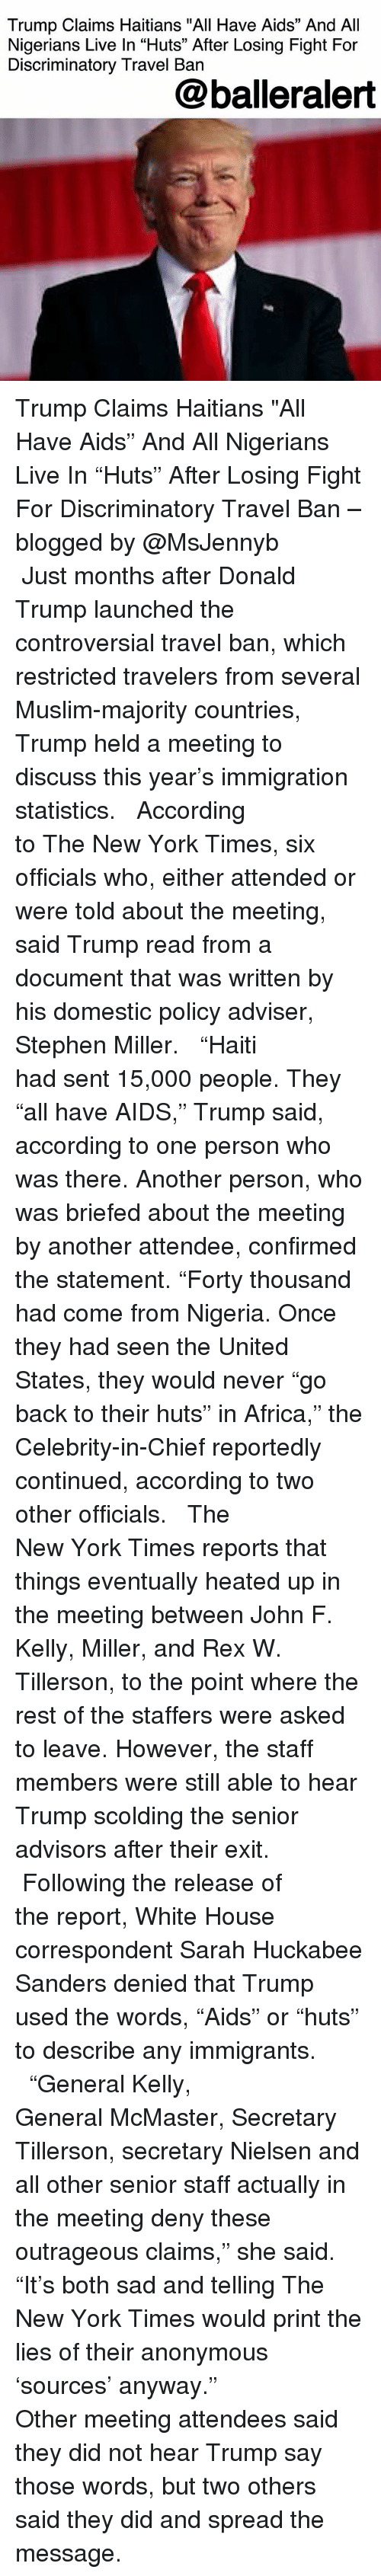 """nielsen: Trump Claims Haitians """"All Have Aids"""" And All  Nigerians Live In """"Huts"""" After Losing Fight For  Discriminatory Travel Ban  @balleralert Trump Claims Haitians """"All Have Aids"""" And All Nigerians Live In """"Huts"""" After Losing Fight For Discriminatory Travel Ban – blogged by @MsJennyb ⠀⠀⠀⠀⠀⠀⠀ ⠀⠀⠀⠀⠀⠀⠀ Just months after Donald Trump launched the controversial travel ban, which restricted travelers from several Muslim-majority countries, Trump held a meeting to discuss this year's immigration statistics. ⠀⠀⠀⠀⠀⠀⠀ ⠀⠀⠀⠀⠀⠀⠀ According to The New York Times, six officials who, either attended or were told about the meeting, said Trump read from a document that was written by his domestic policy adviser, Stephen Miller. ⠀⠀⠀⠀⠀⠀⠀ ⠀⠀⠀⠀⠀⠀⠀ """"Haiti had sent 15,000 people. They """"all have AIDS,"""" Trump said, according to one person who was there. Another person, who was briefed about the meeting by another attendee, confirmed the statement. """"Forty thousand had come from Nigeria. Once they had seen the United States, they would never """"go back to their huts"""" in Africa,"""" the Celebrity-in-Chief reportedly continued, according to two other officials. ⠀⠀⠀⠀⠀⠀⠀ ⠀⠀⠀⠀⠀⠀⠀ The New York Times reports that things eventually heated up in the meeting between John F. Kelly, Miller, and Rex W. Tillerson, to the point where the rest of the staffers were asked to leave. However, the staff members were still able to hear Trump scolding the senior advisors after their exit. ⠀⠀⠀⠀⠀⠀⠀ ⠀⠀⠀⠀⠀⠀⠀ Following the release of the report, White House correspondent Sarah Huckabee Sanders denied that Trump used the words, """"Aids"""" or """"huts"""" to describe any immigrants. ⠀⠀⠀⠀⠀⠀⠀ ⠀⠀⠀⠀⠀⠀⠀ """"General Kelly, General McMaster, Secretary Tillerson, secretary Nielsen and all other senior staff actually in the meeting deny these outrageous claims,"""" she said. """"It's both sad and telling The New York Times would print the lies of their anonymous 'sources' anyway."""" ⠀⠀⠀⠀⠀⠀⠀ ⠀⠀⠀⠀⠀⠀⠀ Other meeting attendees said they did not hear Trump say """